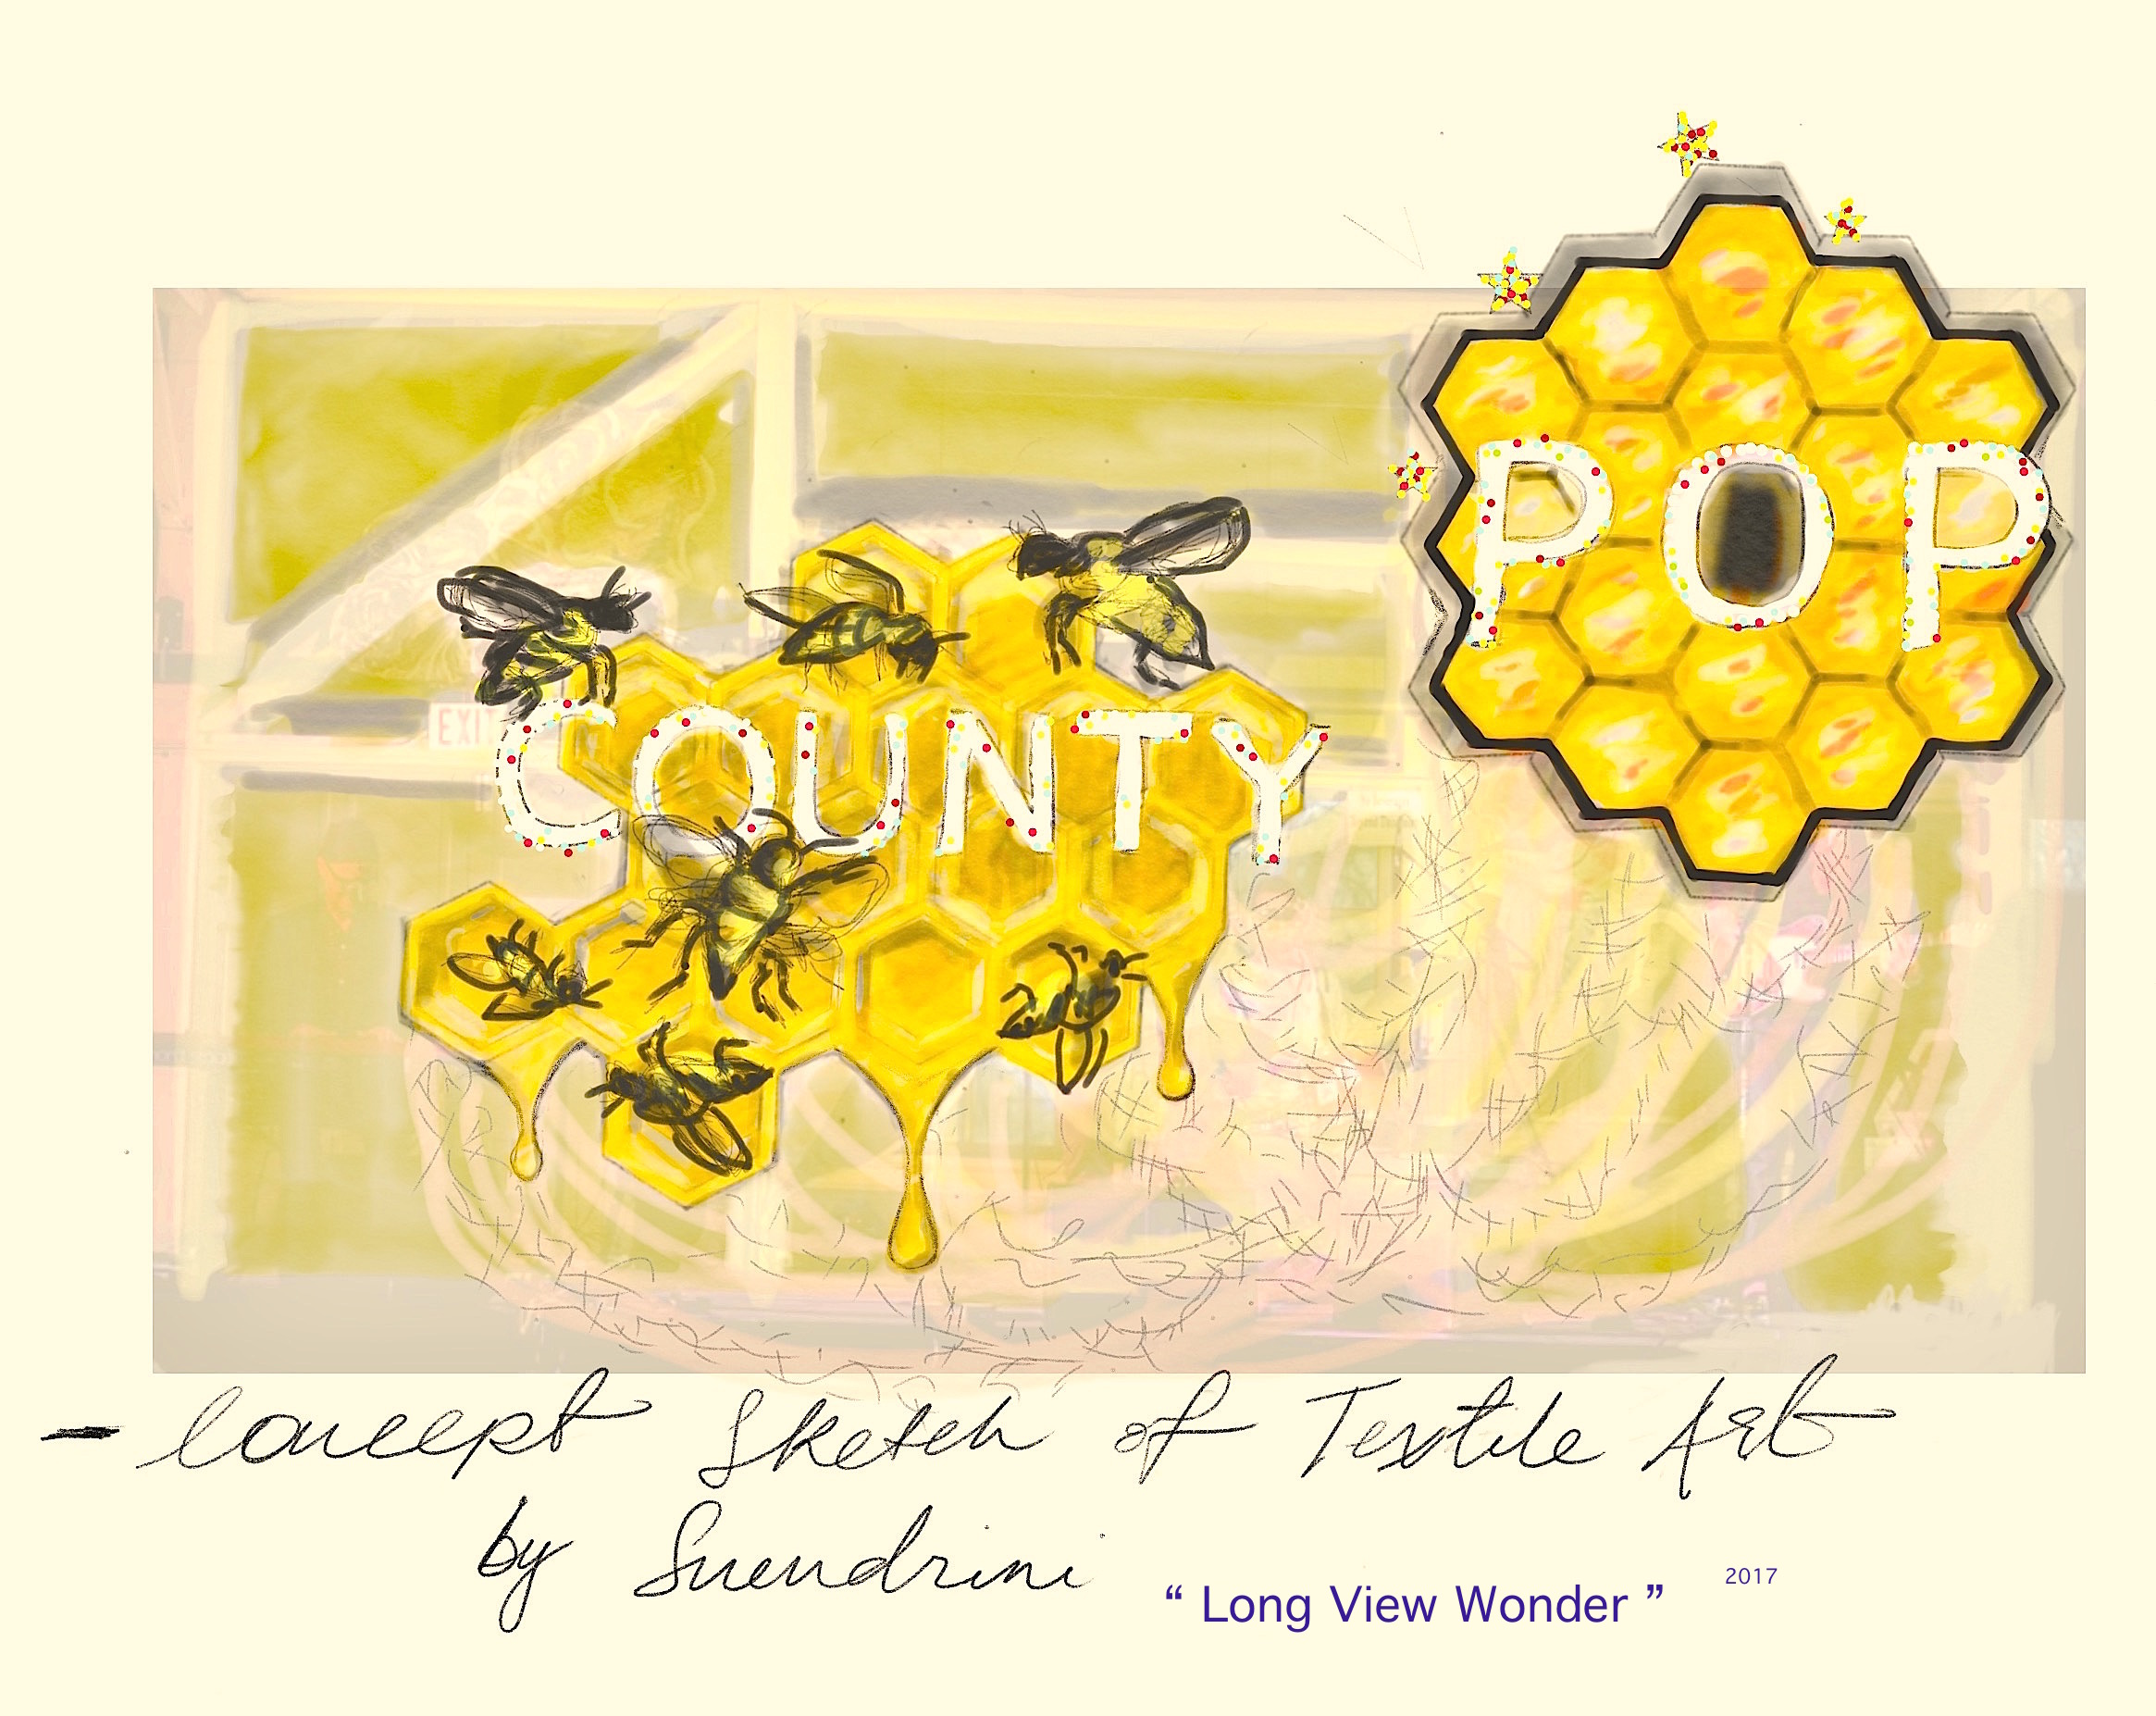 Long View Wonder - Visualizing the importance of Science & NatureImage: Sketch - configured concept to suit the County Pop music stageUp cycled textile stage art for County Pop 2017, at the historical Crystal Palace in Picton, Prince Edward County, Ontario06 May 2017Good Public Reference:EcojusticePollinator Canada